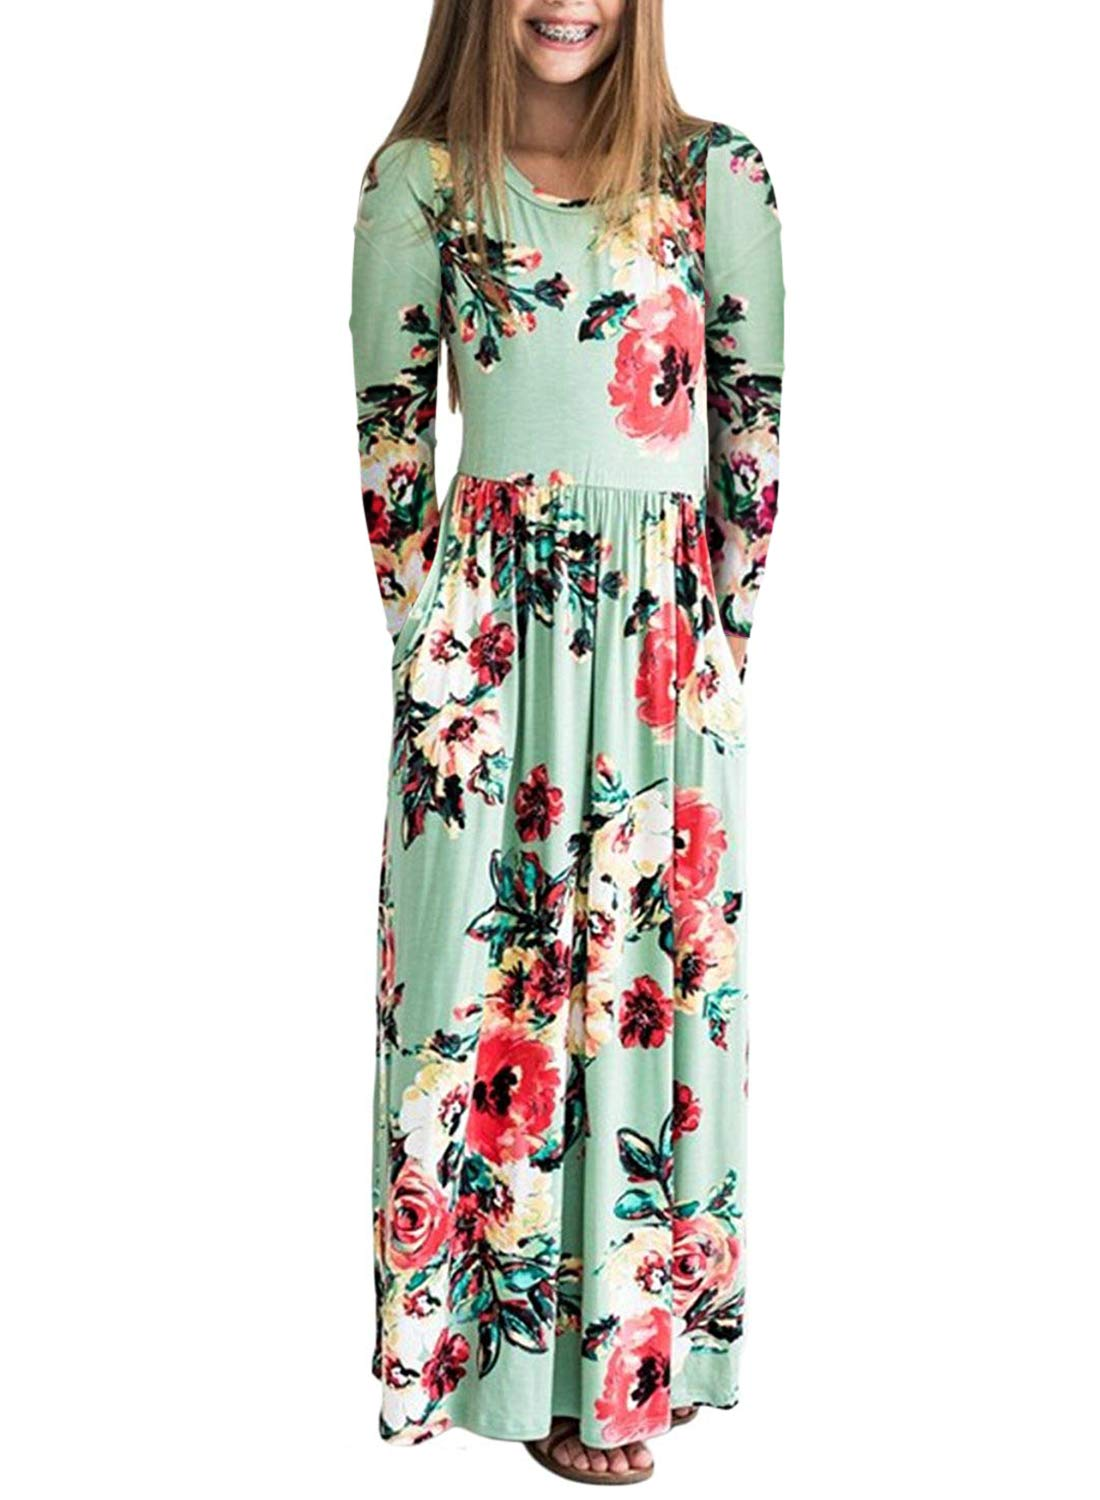 ZESICA Girl's Summer Short Sleeve Floral Printed Empire Waist Long Maxi Dress with Pockets ZEDec20